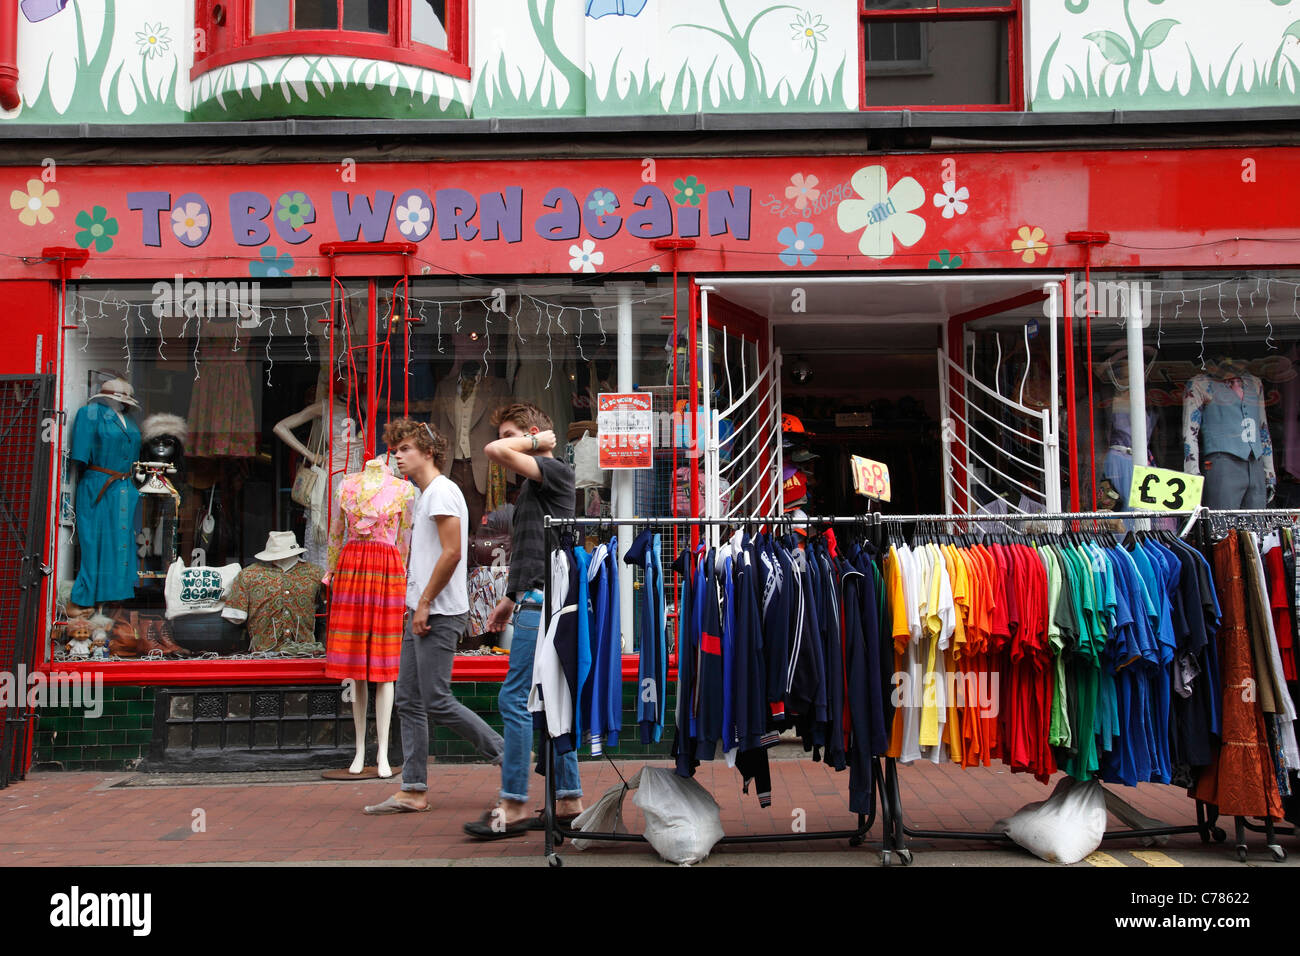 578c60ad3a Used Clothes Shop Stock Photos   Used Clothes Shop Stock Images - Alamy